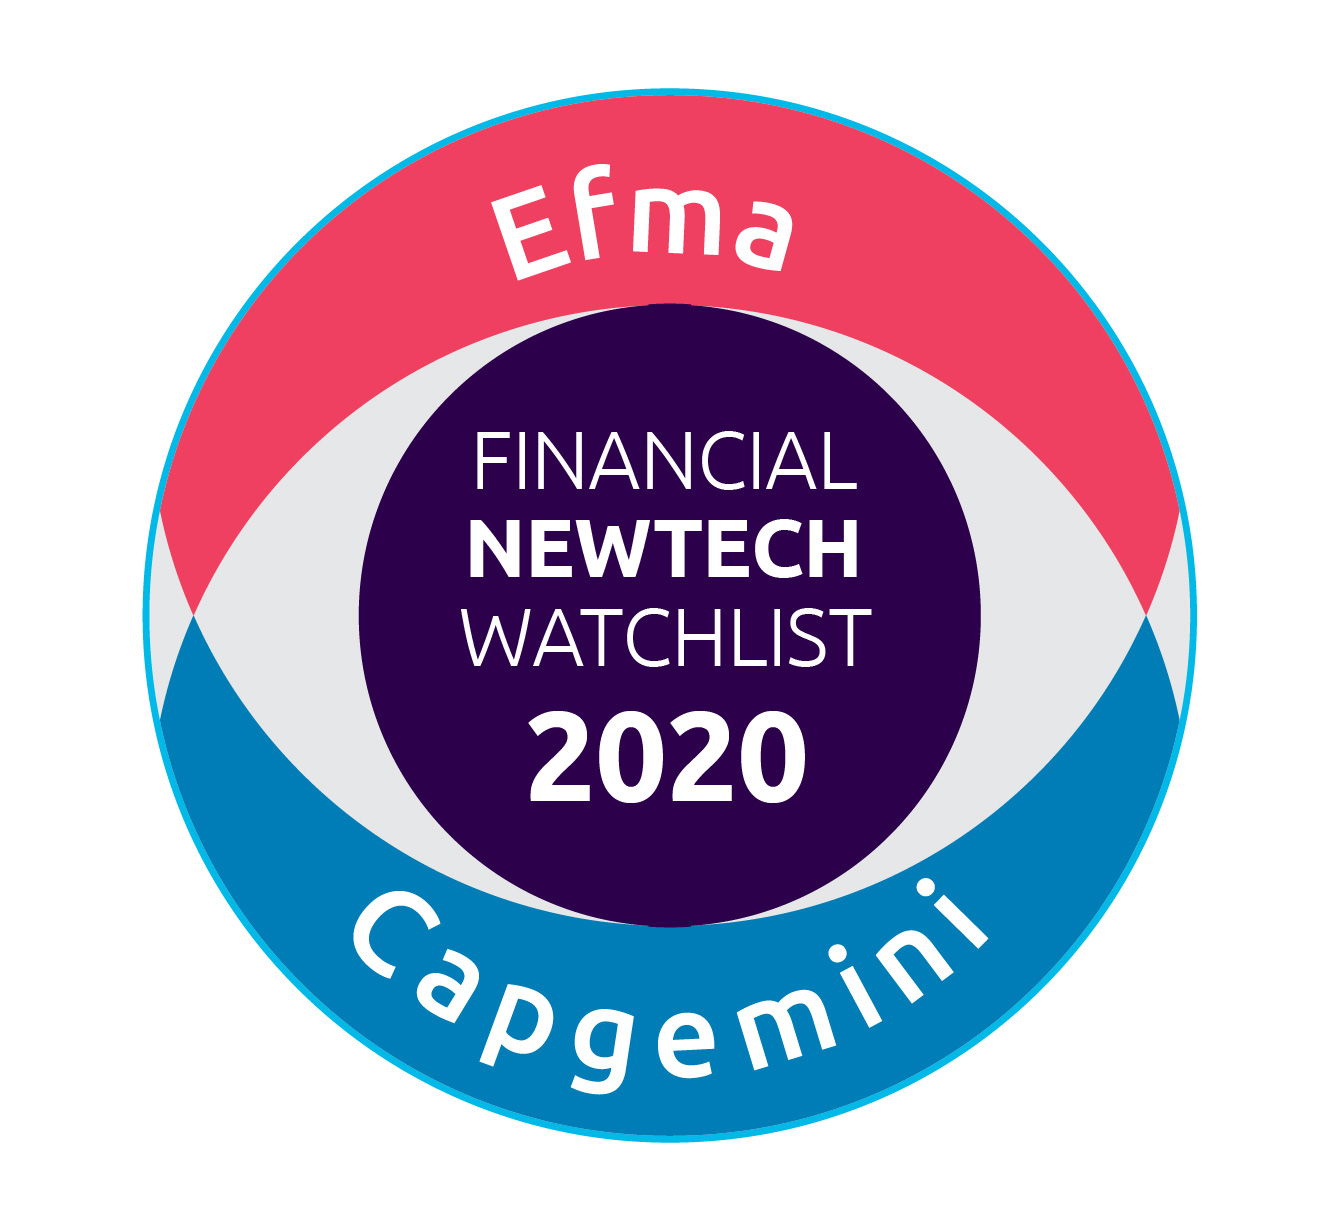 Efma-Capgemini Financial NewTech 2020 Watchlist